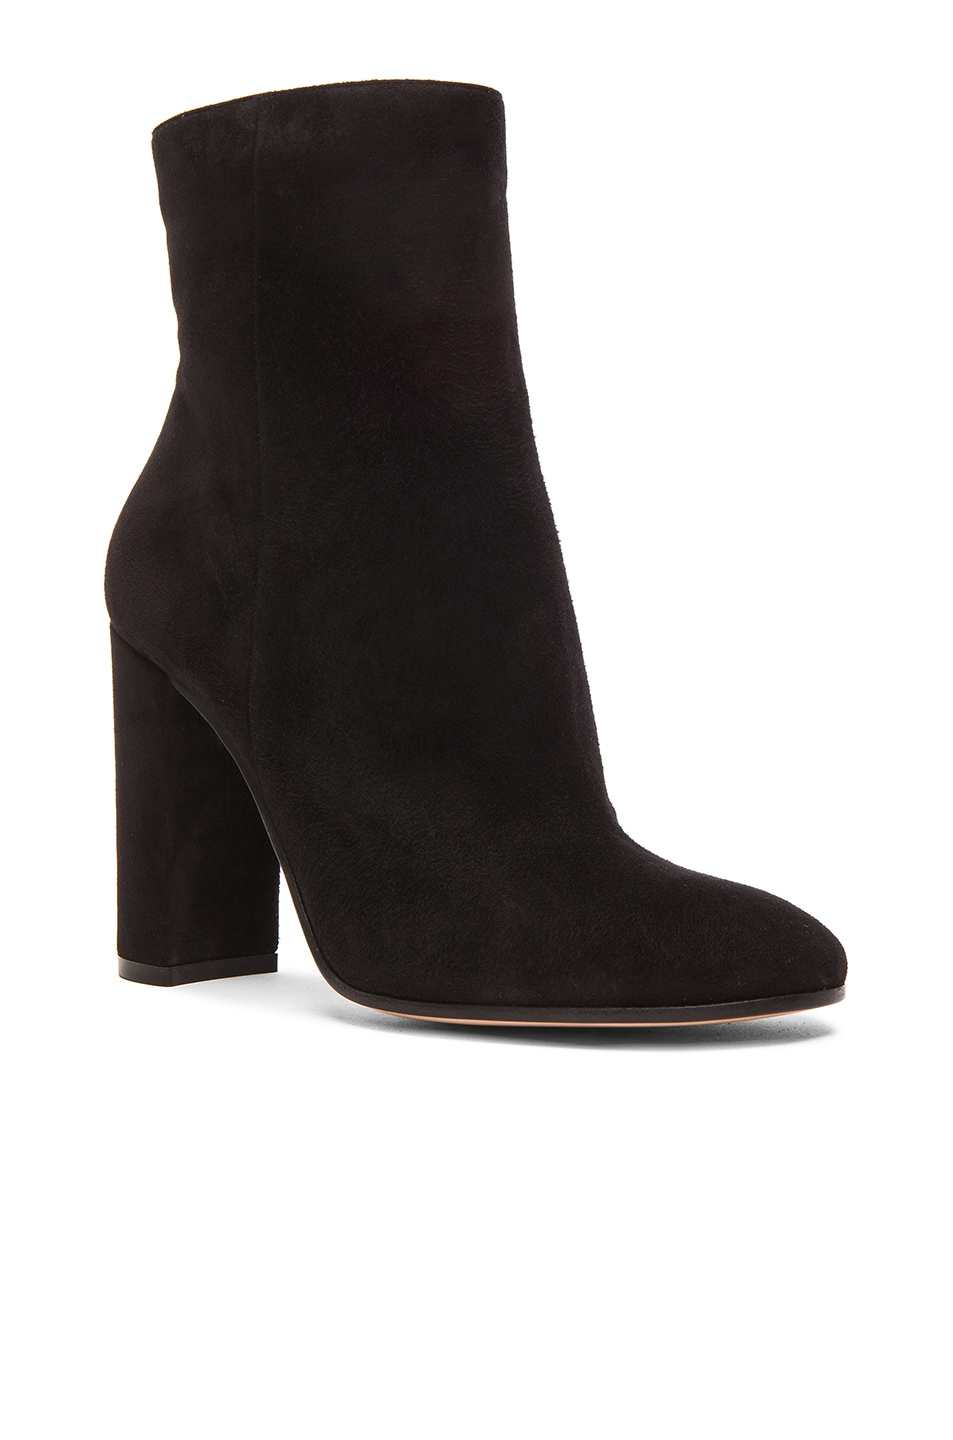 Image 2 of Gianvito Rossi Suede Booties in Black